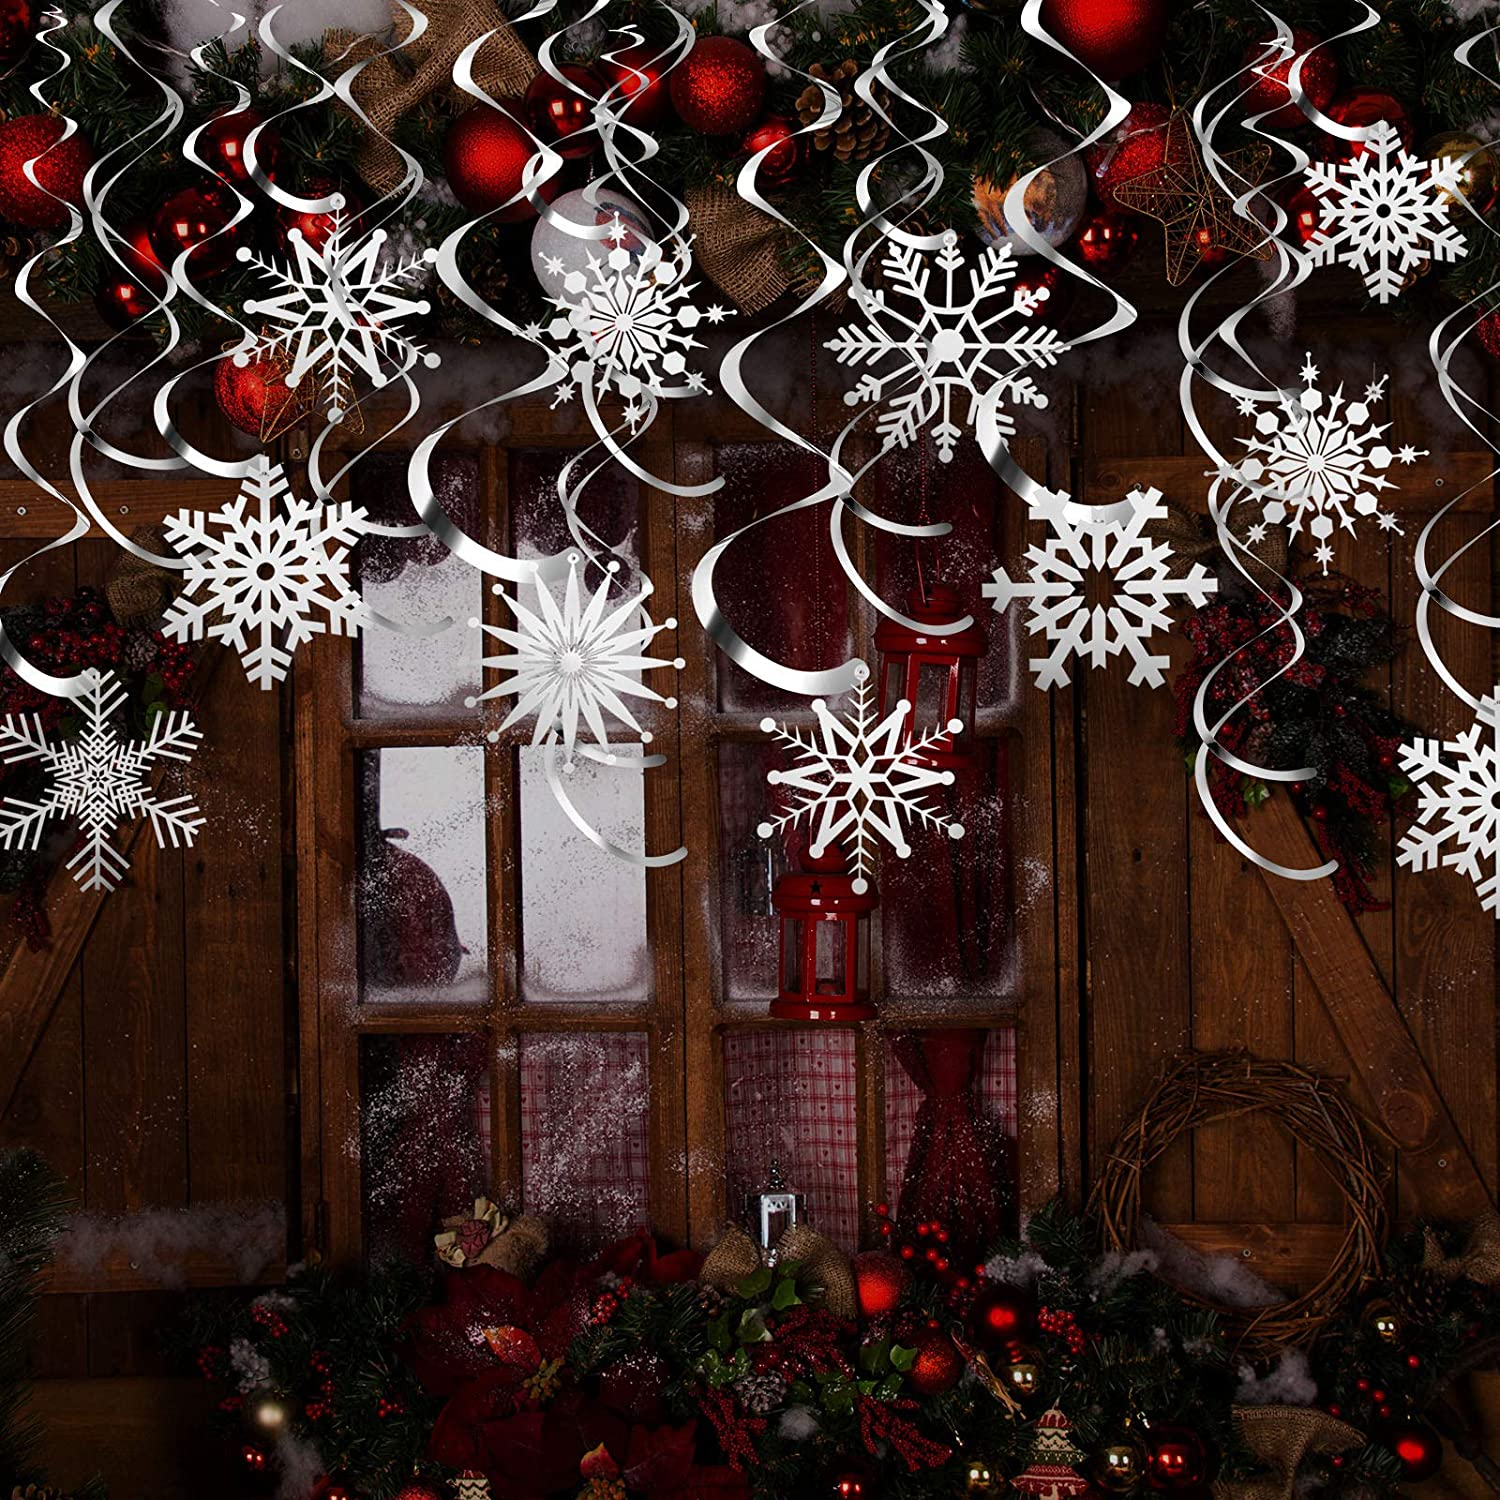 Tatuo 44 Pieces Snowflake Swirls Decoration, Christmas Snowflake Hanging Swirls Garland Foil Ceiling Ornaments for Xmas Winter Holiday Party Decor Supplies